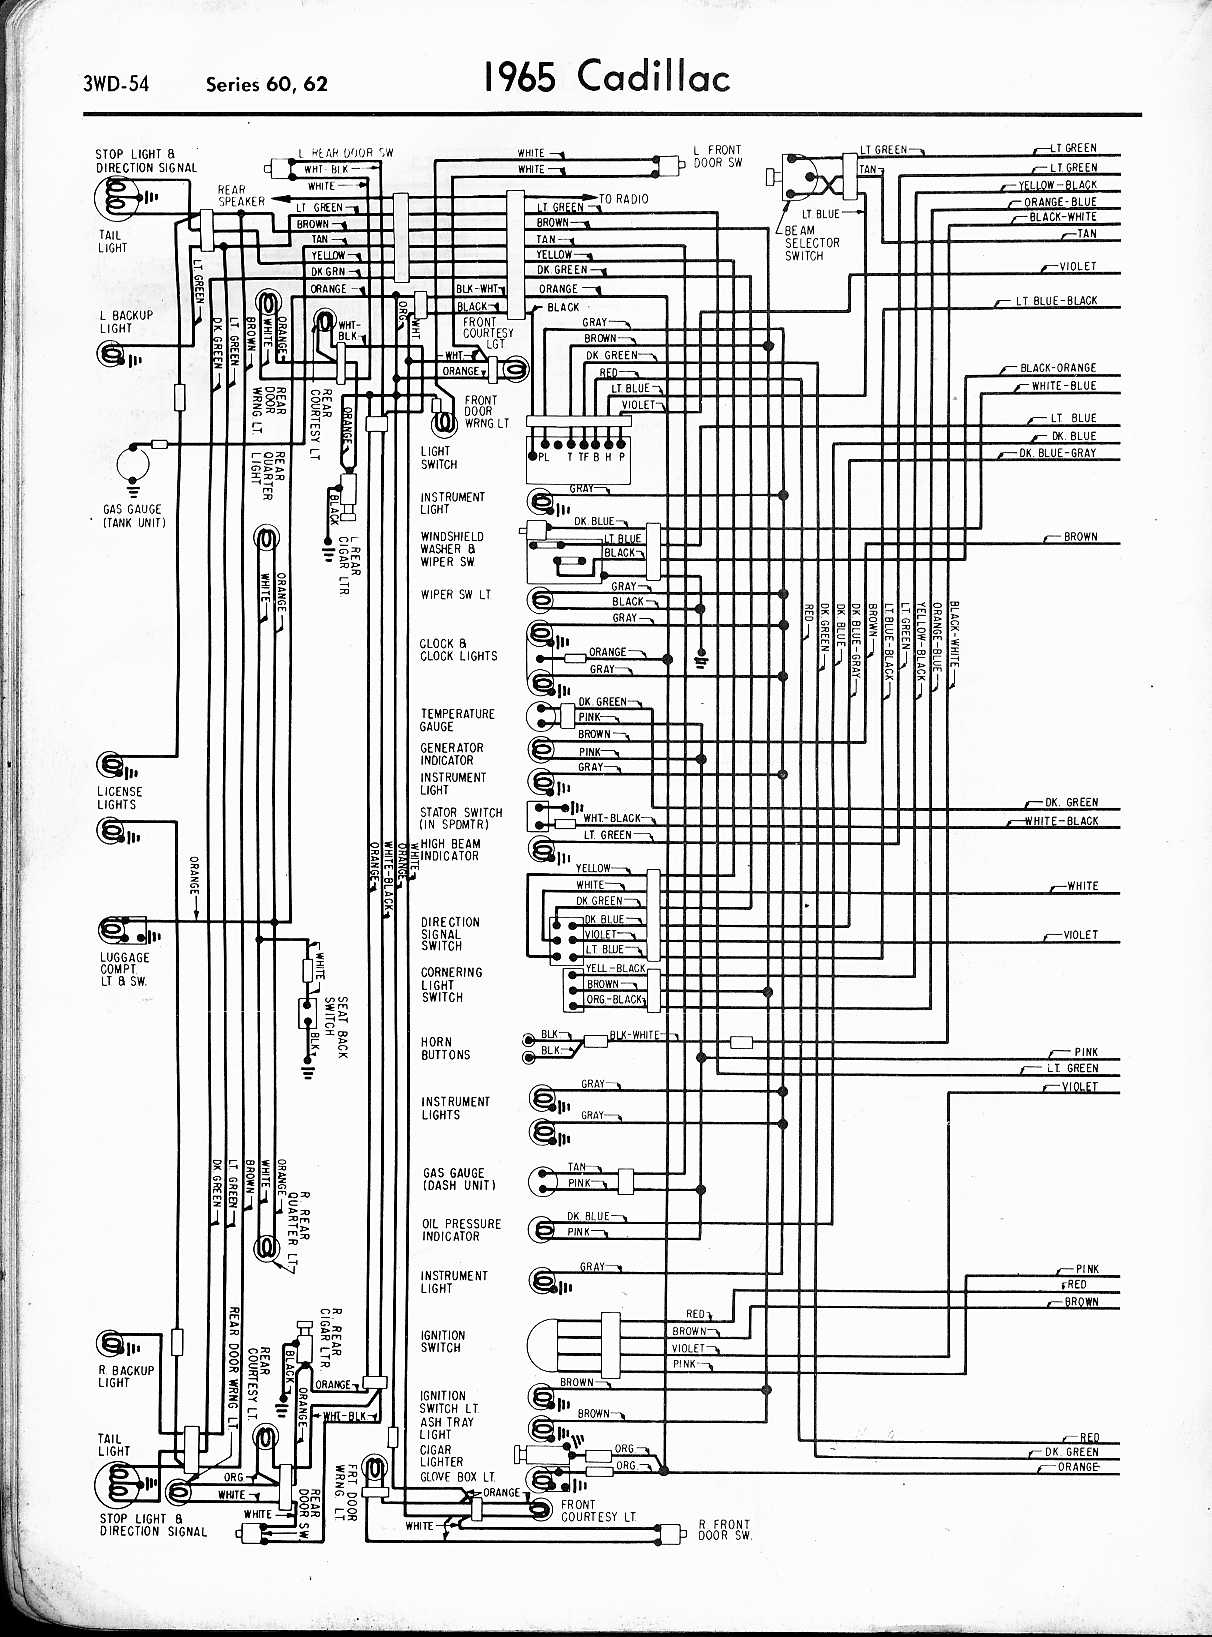 1965 Cadillac Wiring Diagram Td Colorful Mg Festooning Schematic Series Fleetwood